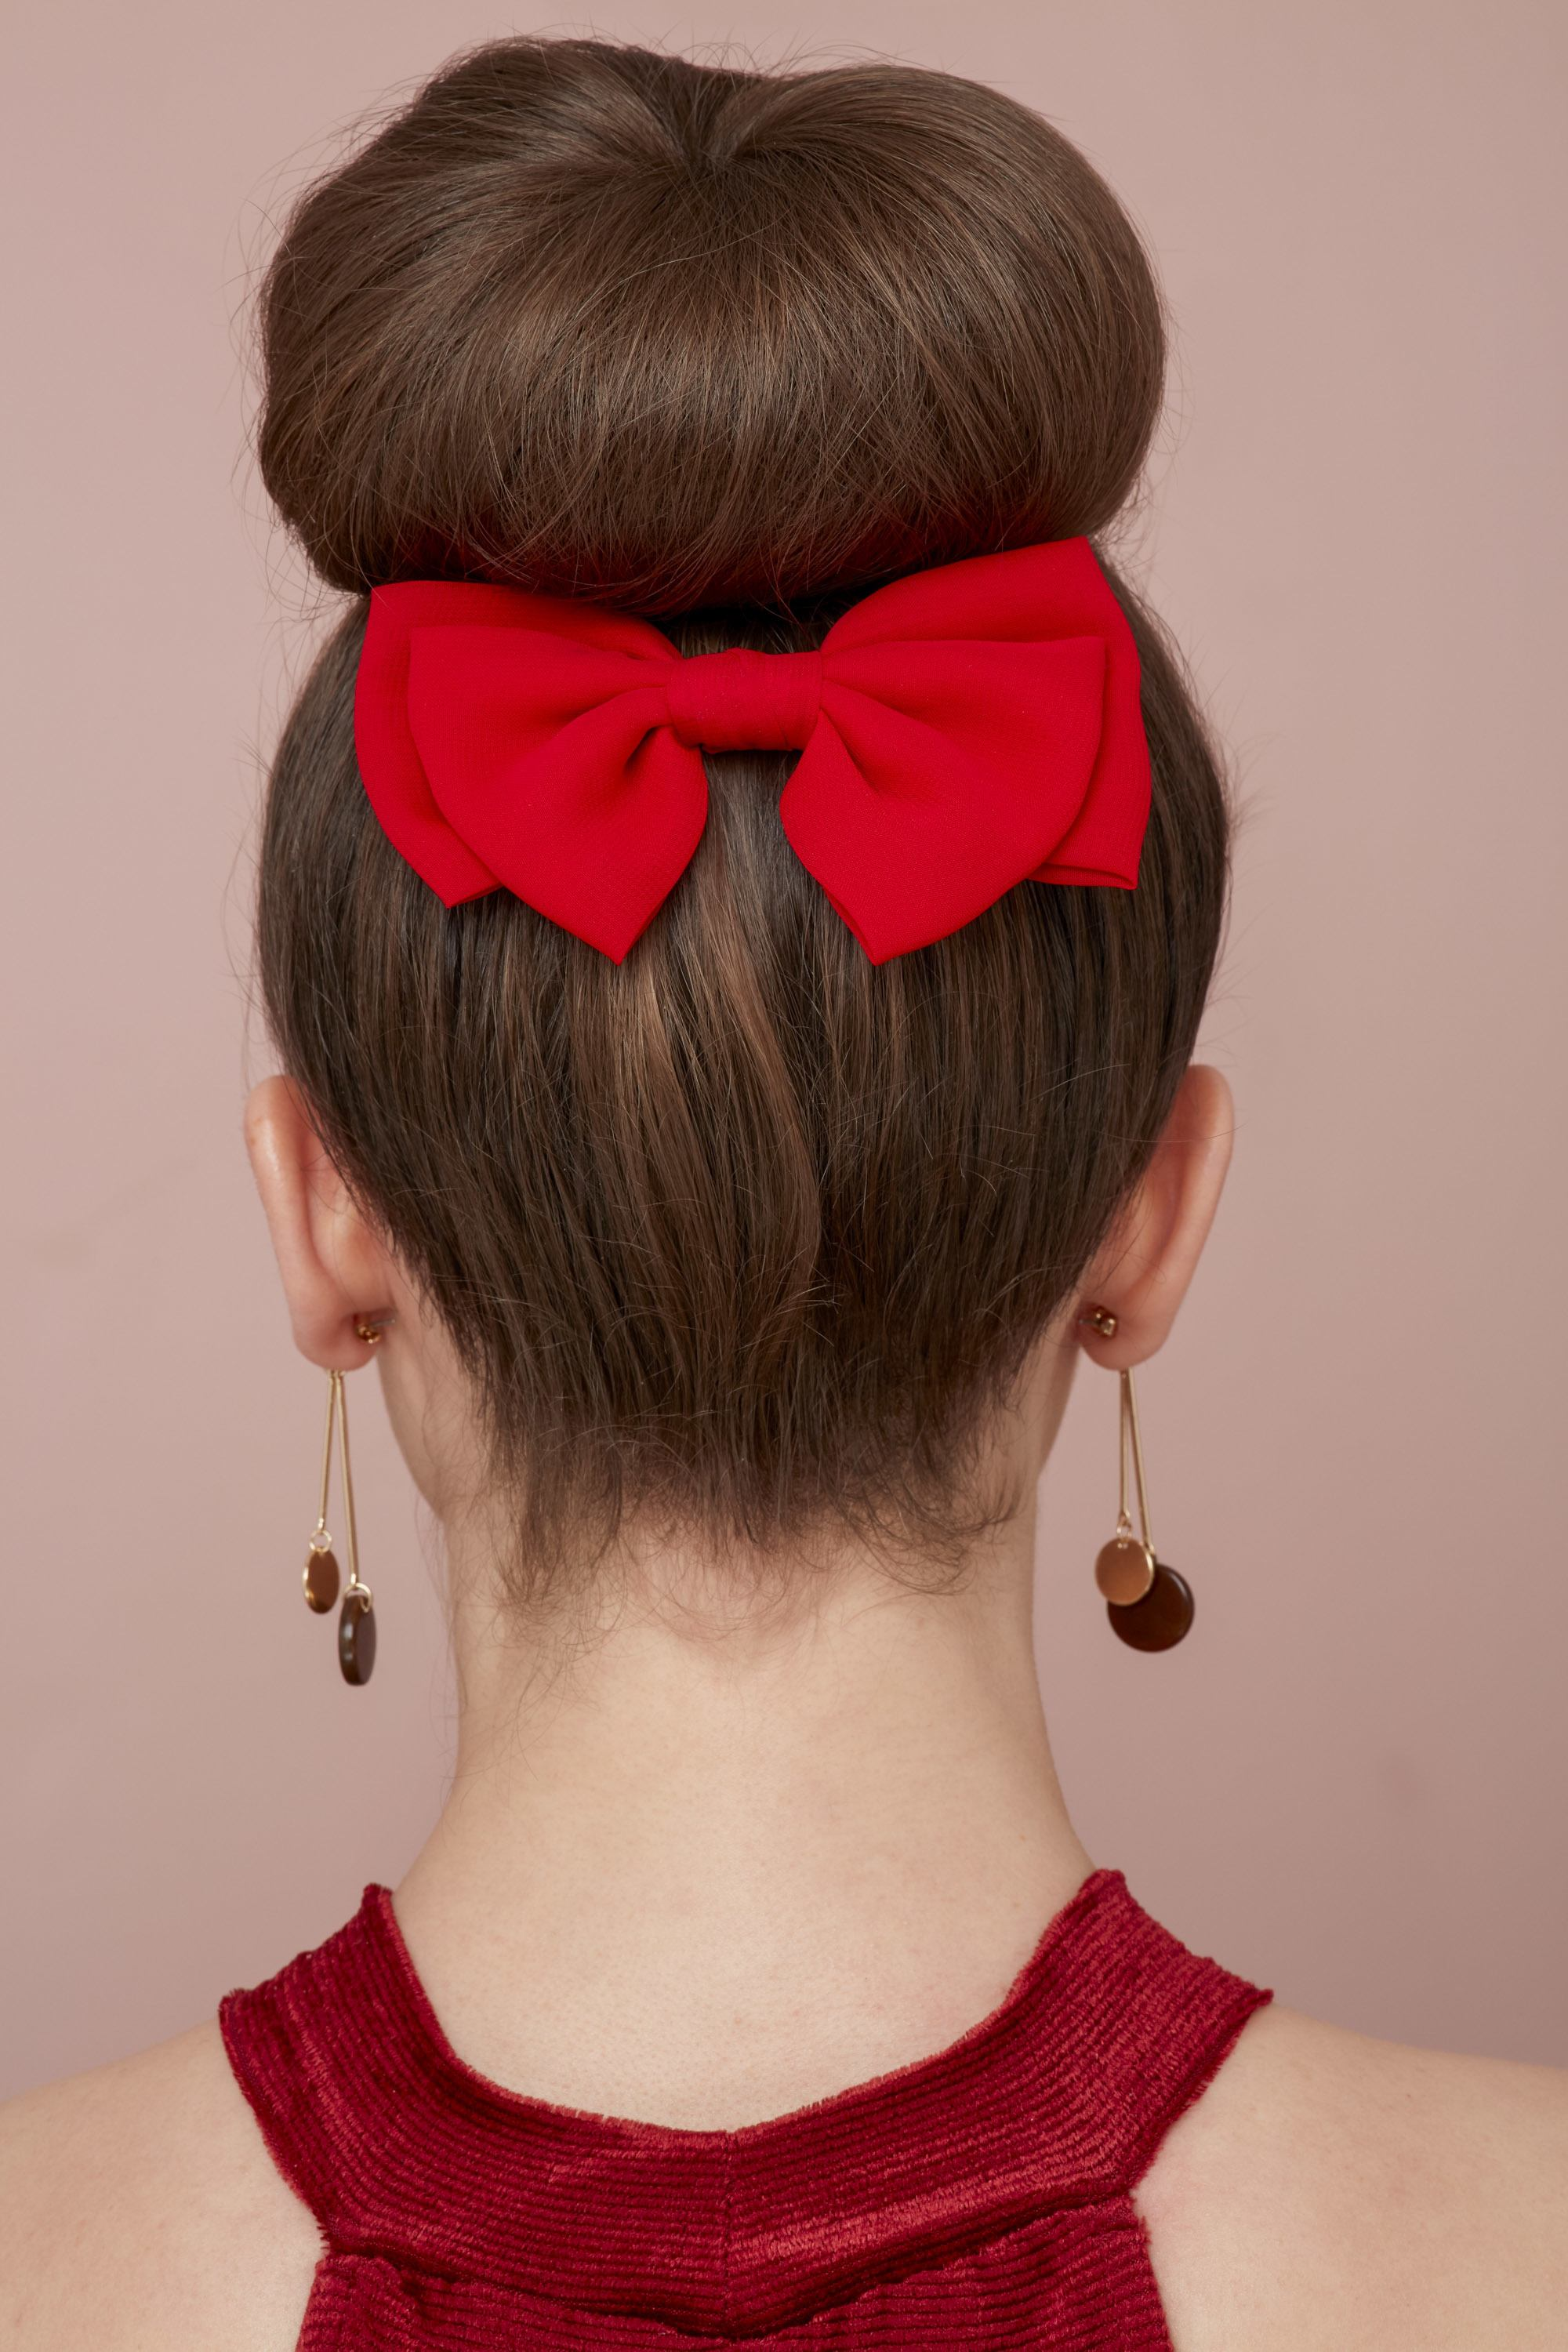 Valentines hair: Behind view of a brunette woman with her hair in a high ballerina bun with a red bow accessory, wearing a red dress